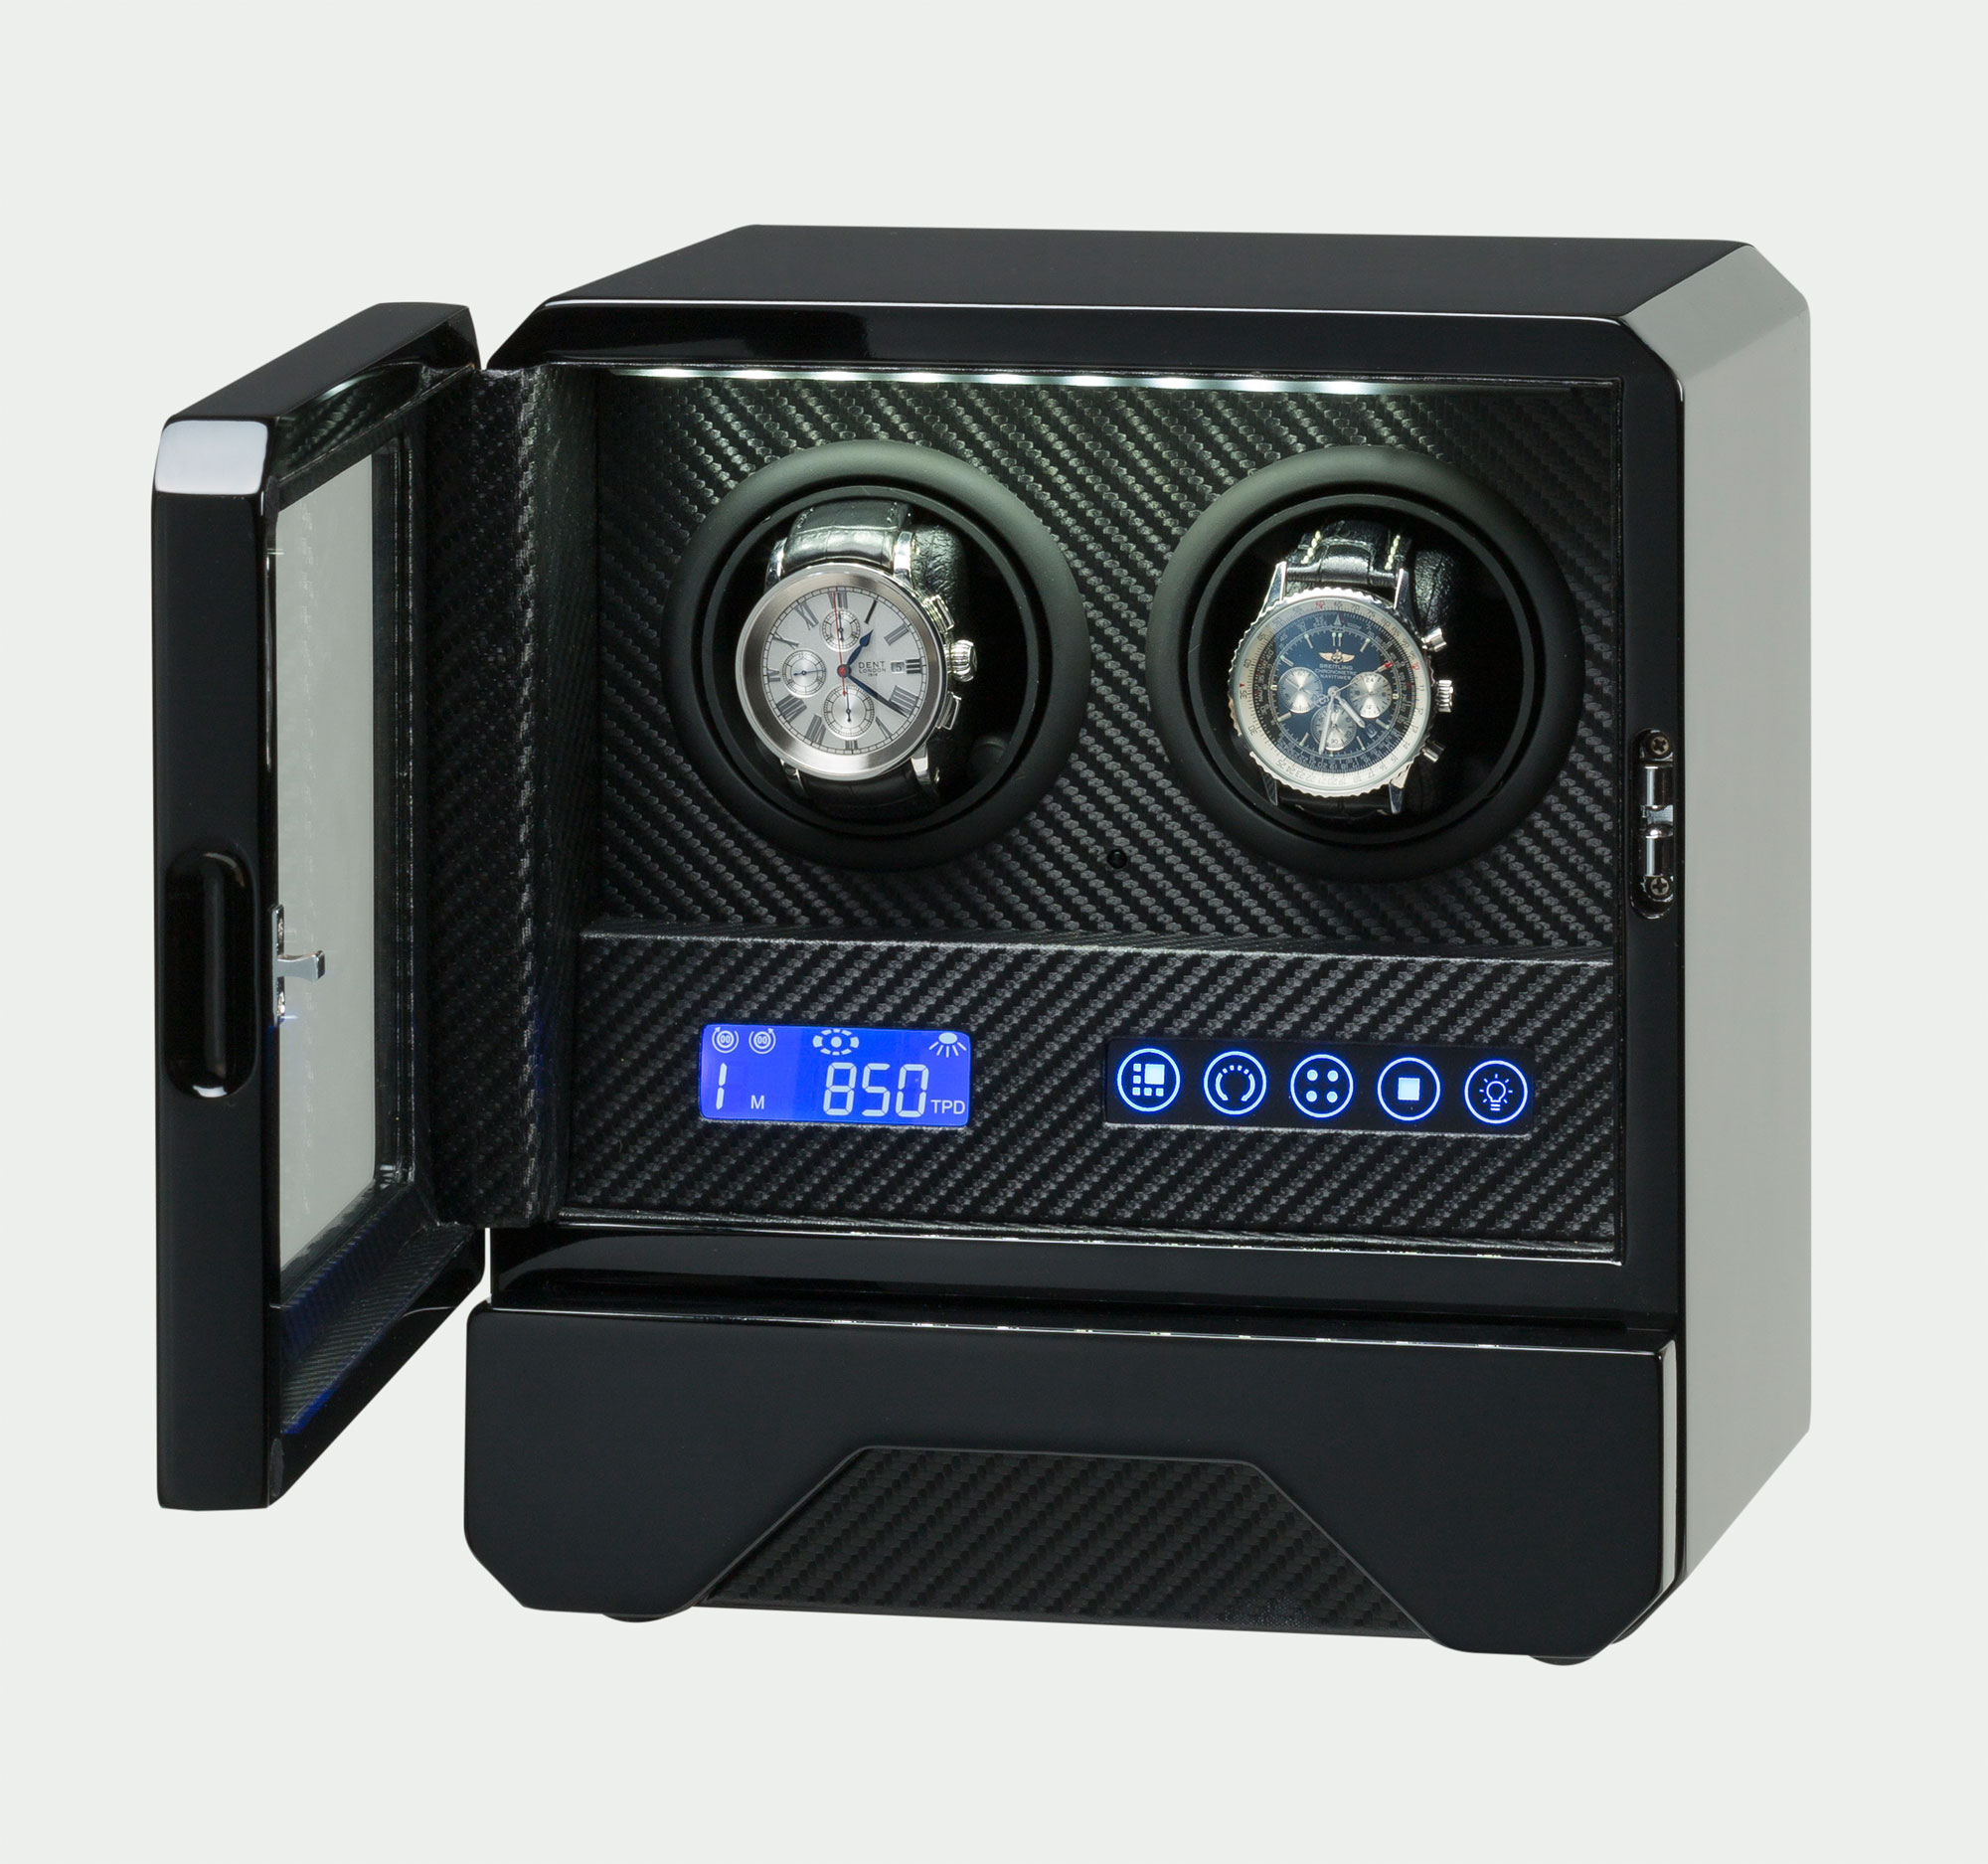 Barrington Double Watch Winder with the case front opened